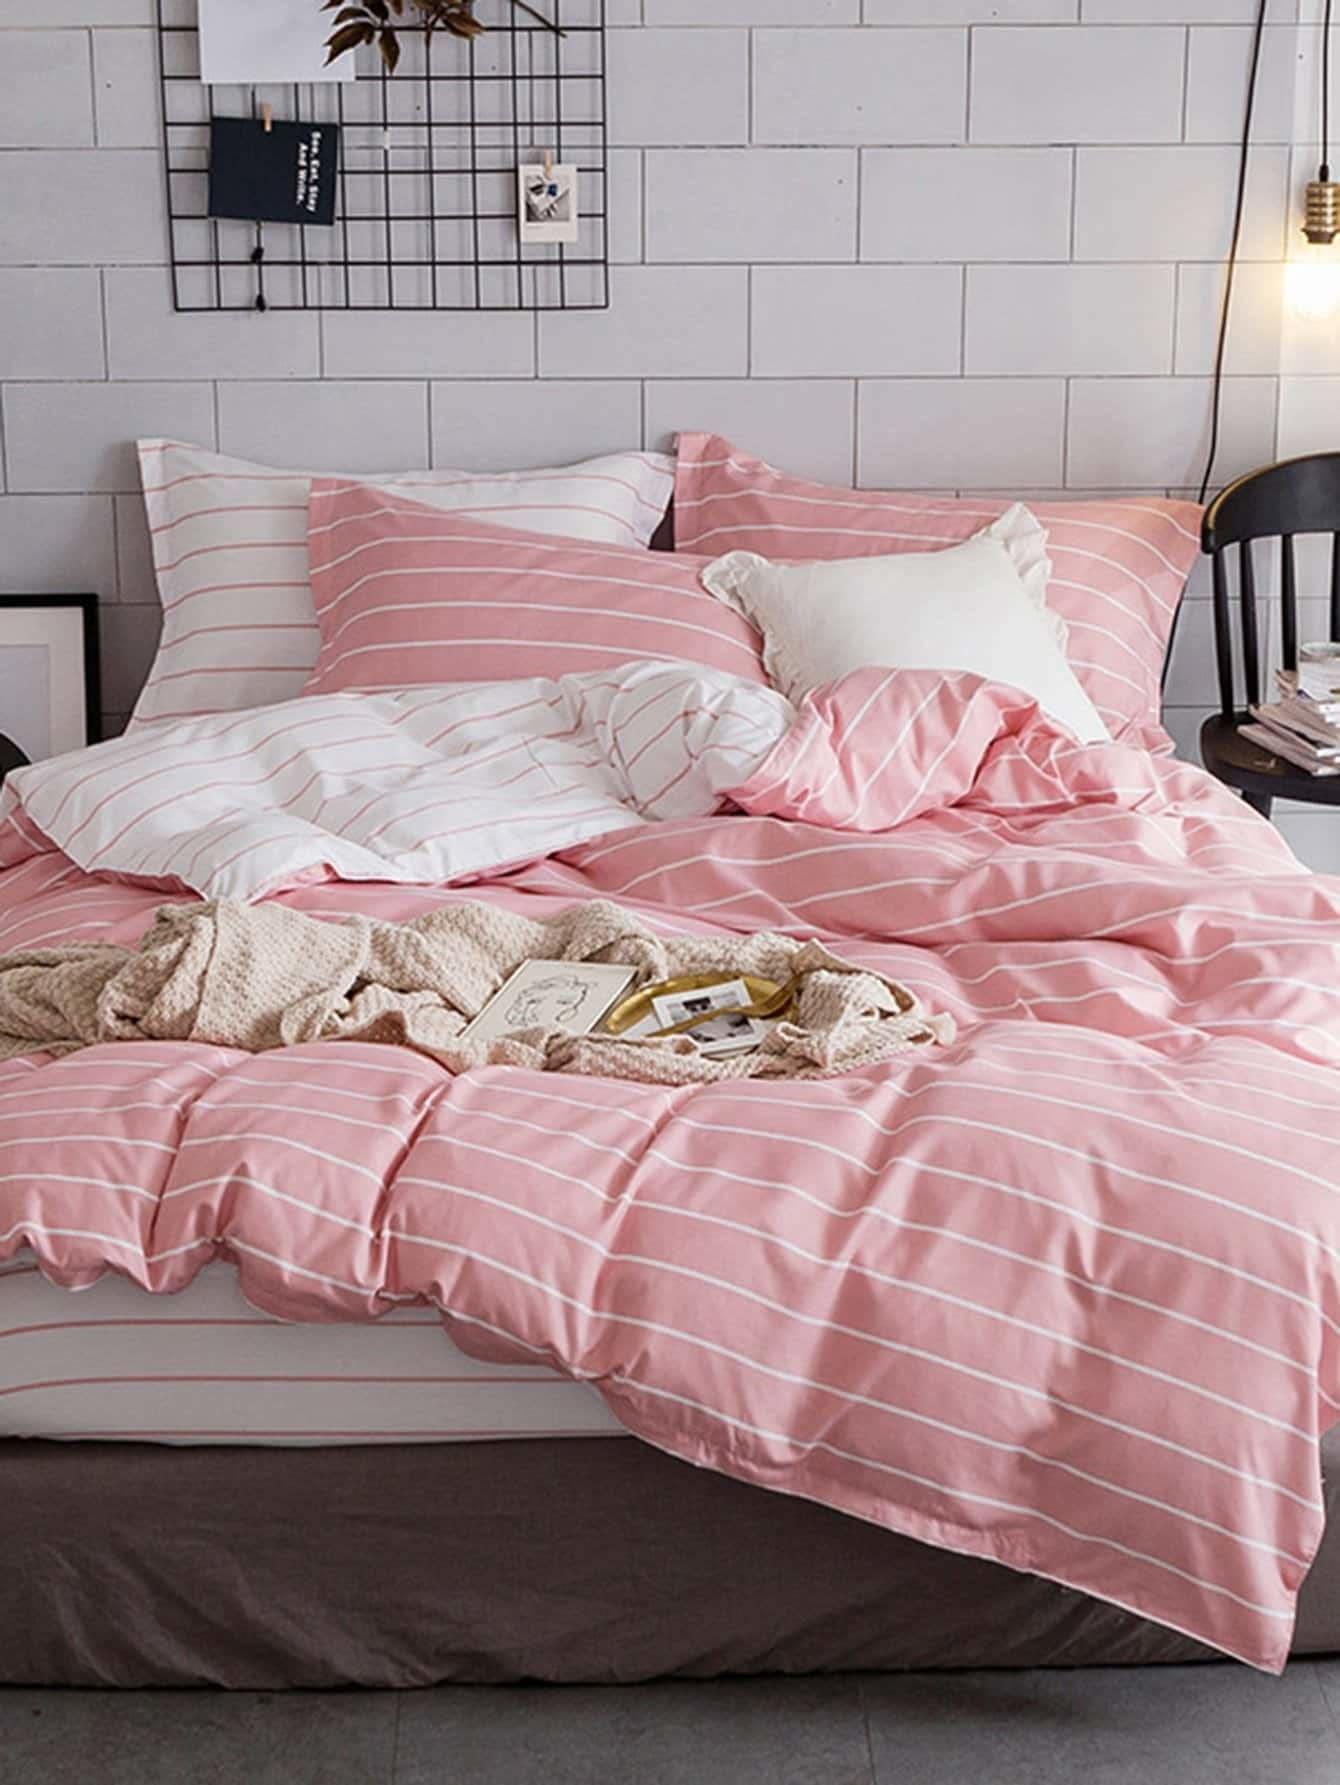 Pencil Striped Duvet Cover Set - Bedding Sets